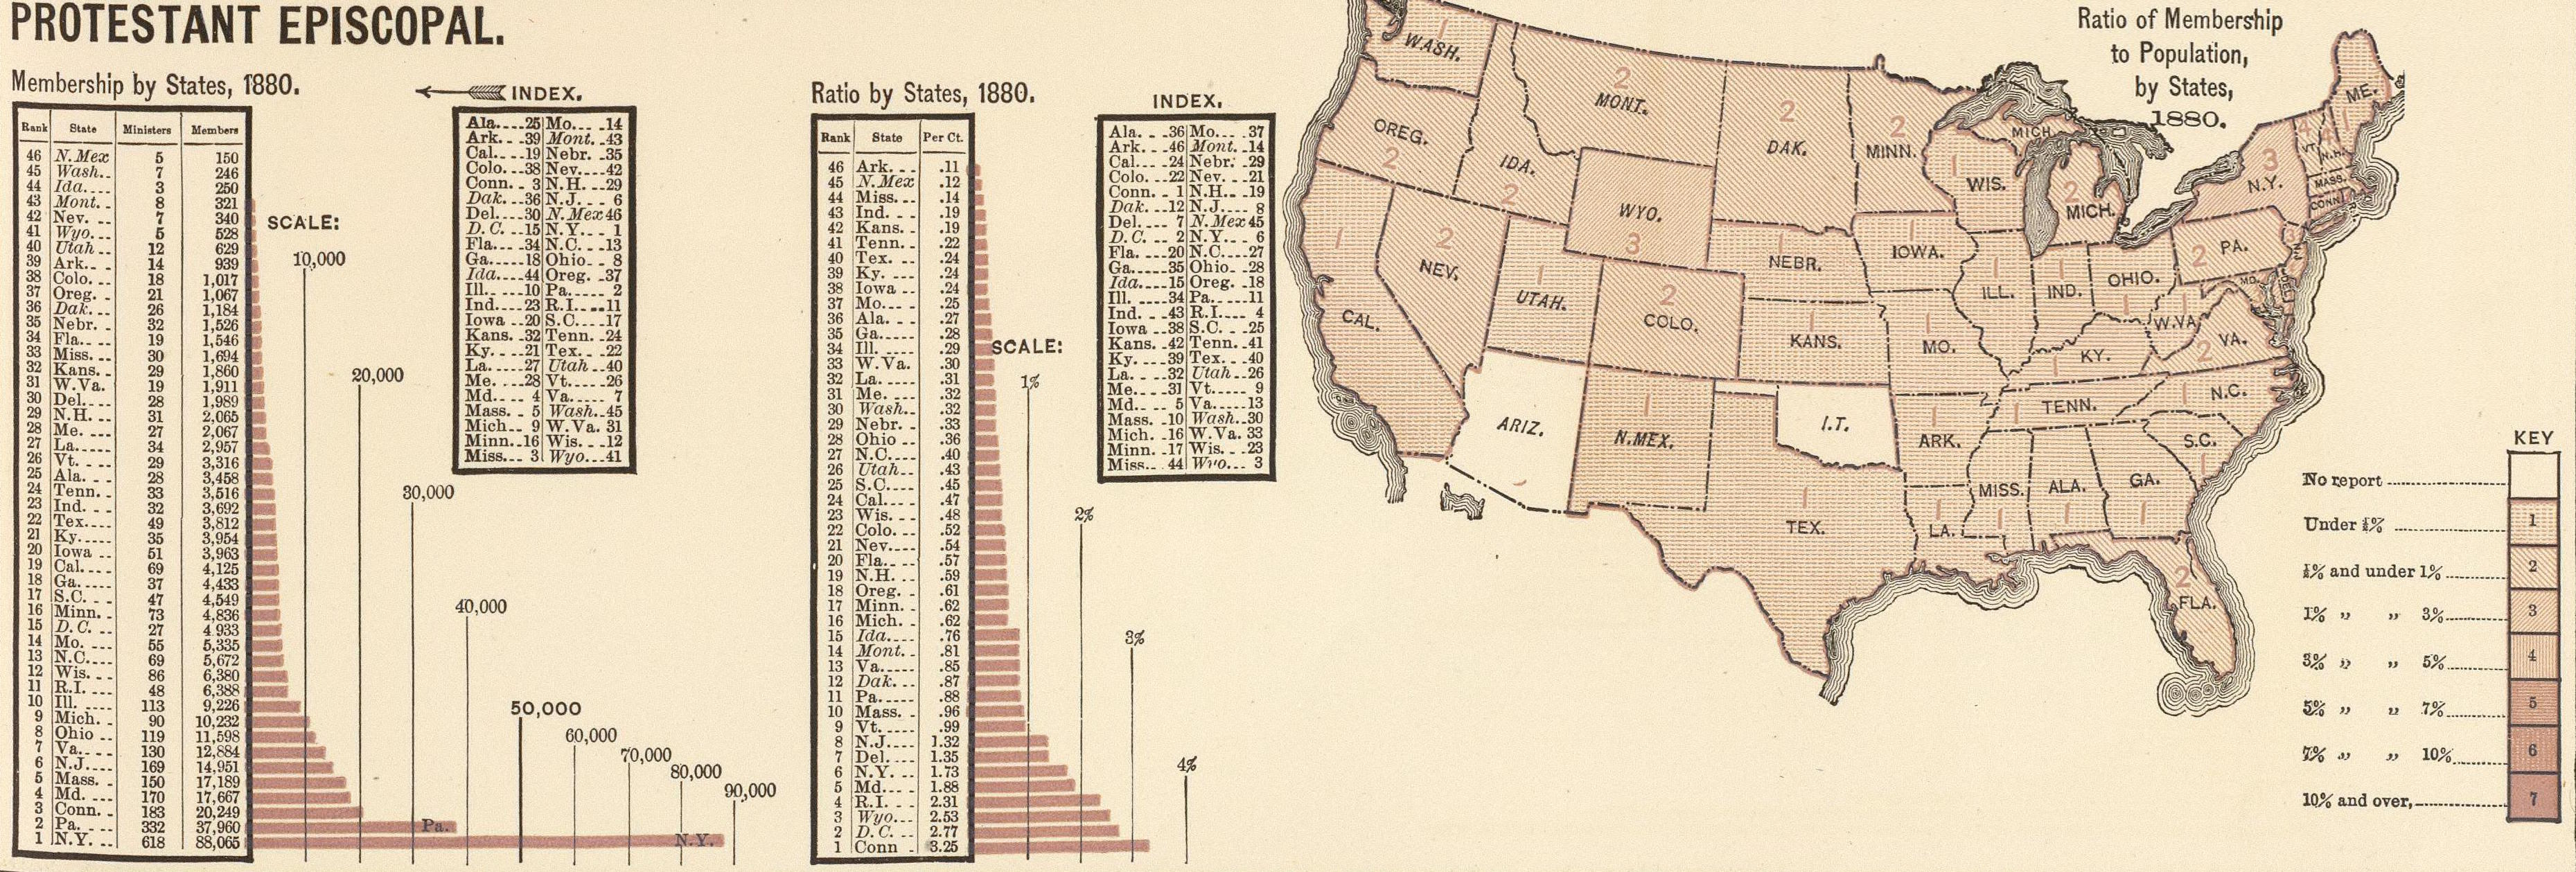 Detail of denominational statistics for the Protestant Episcopal Church in 1880 from Fletcher W. Hewes and Henry Gannet, Scribner's Statistical Atlas of the United States Showing by Graphic Methods Their Present Condition and Their Political, Social and Industrial Development (New York: Charles Scribner's Sons, 1883), plate 59. Courtesy of the David Rumsey Map Collection.